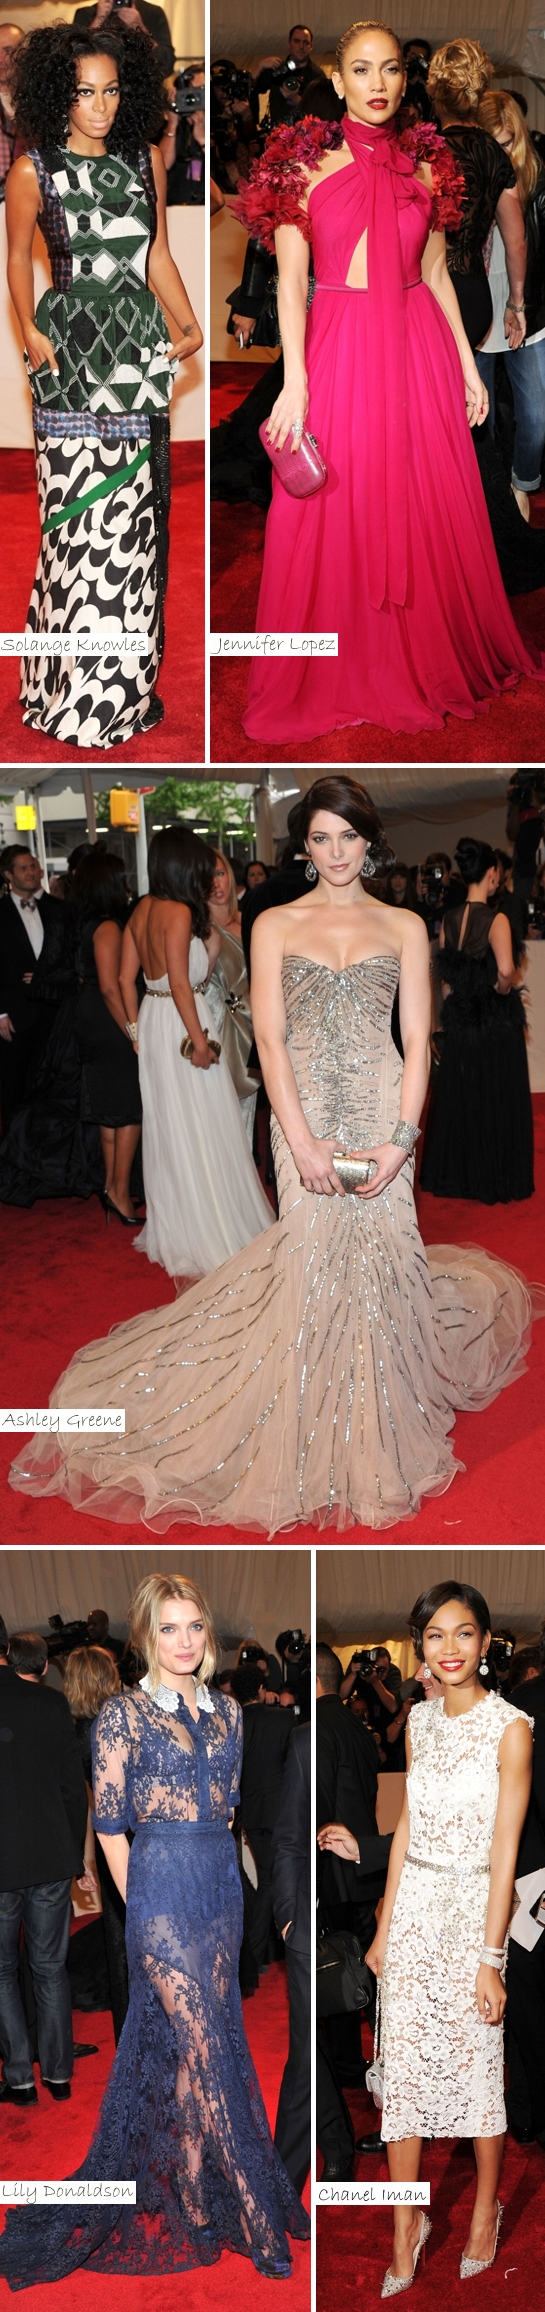 As Mais Bem Vestidas Met Ball 2011d Vote: As Mais Bem Vestidas do Met Ball 2011